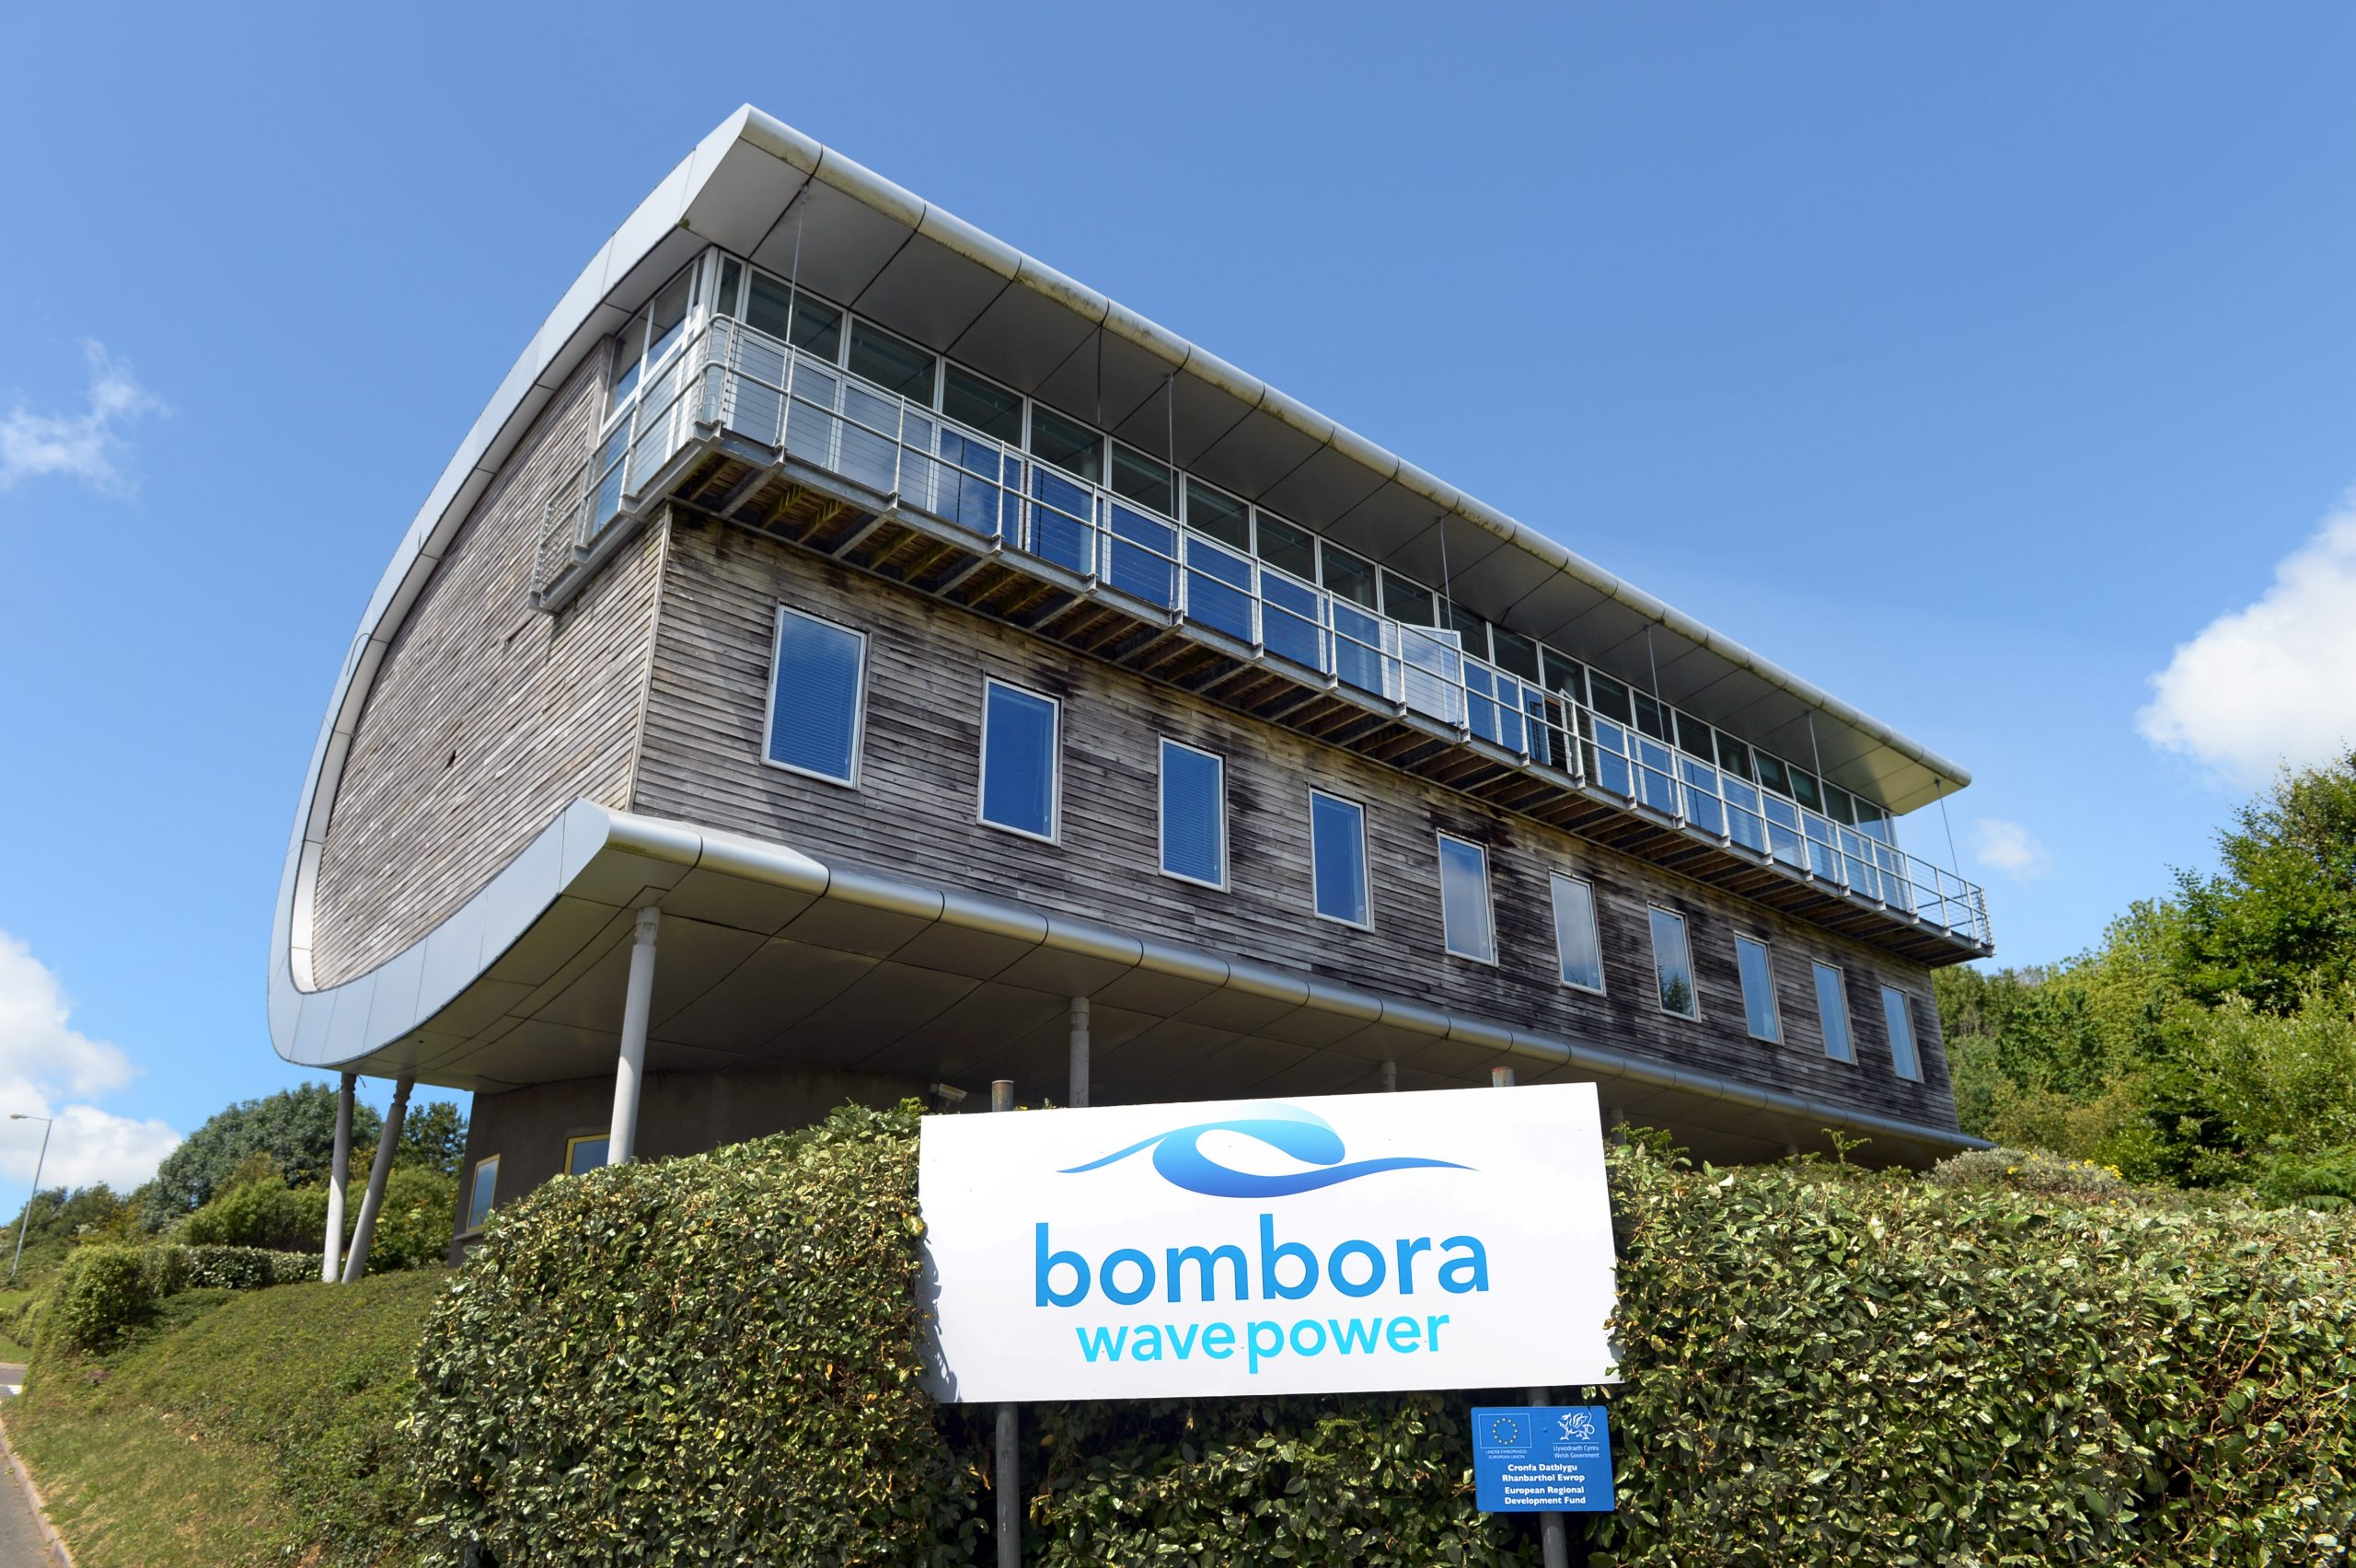 Bombora's Head Office in Pembroke Dock